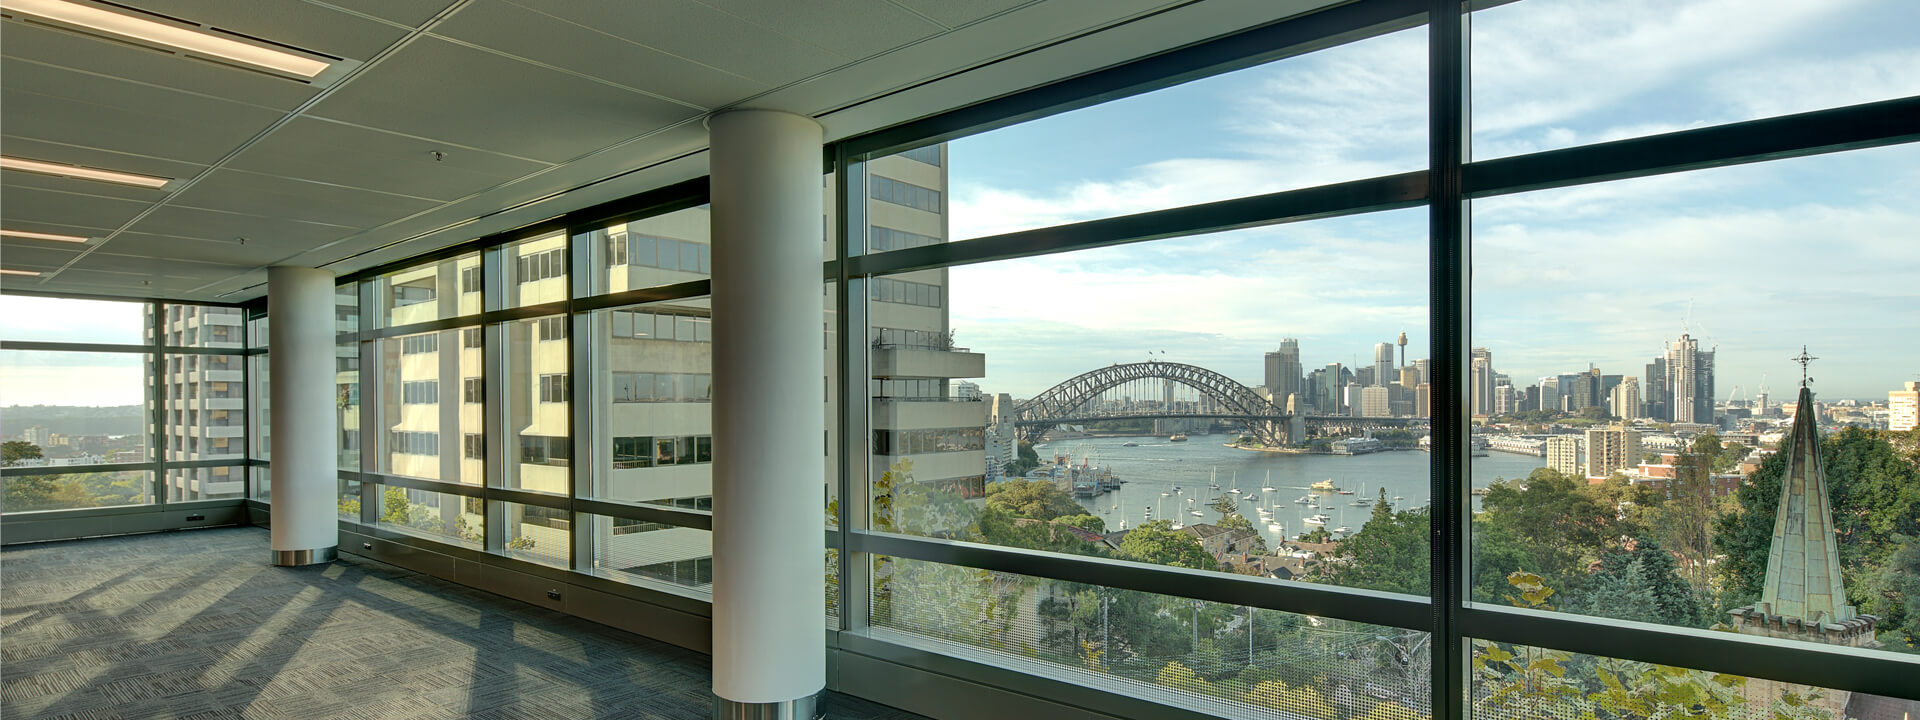 view to Harbour Bridge from the office building